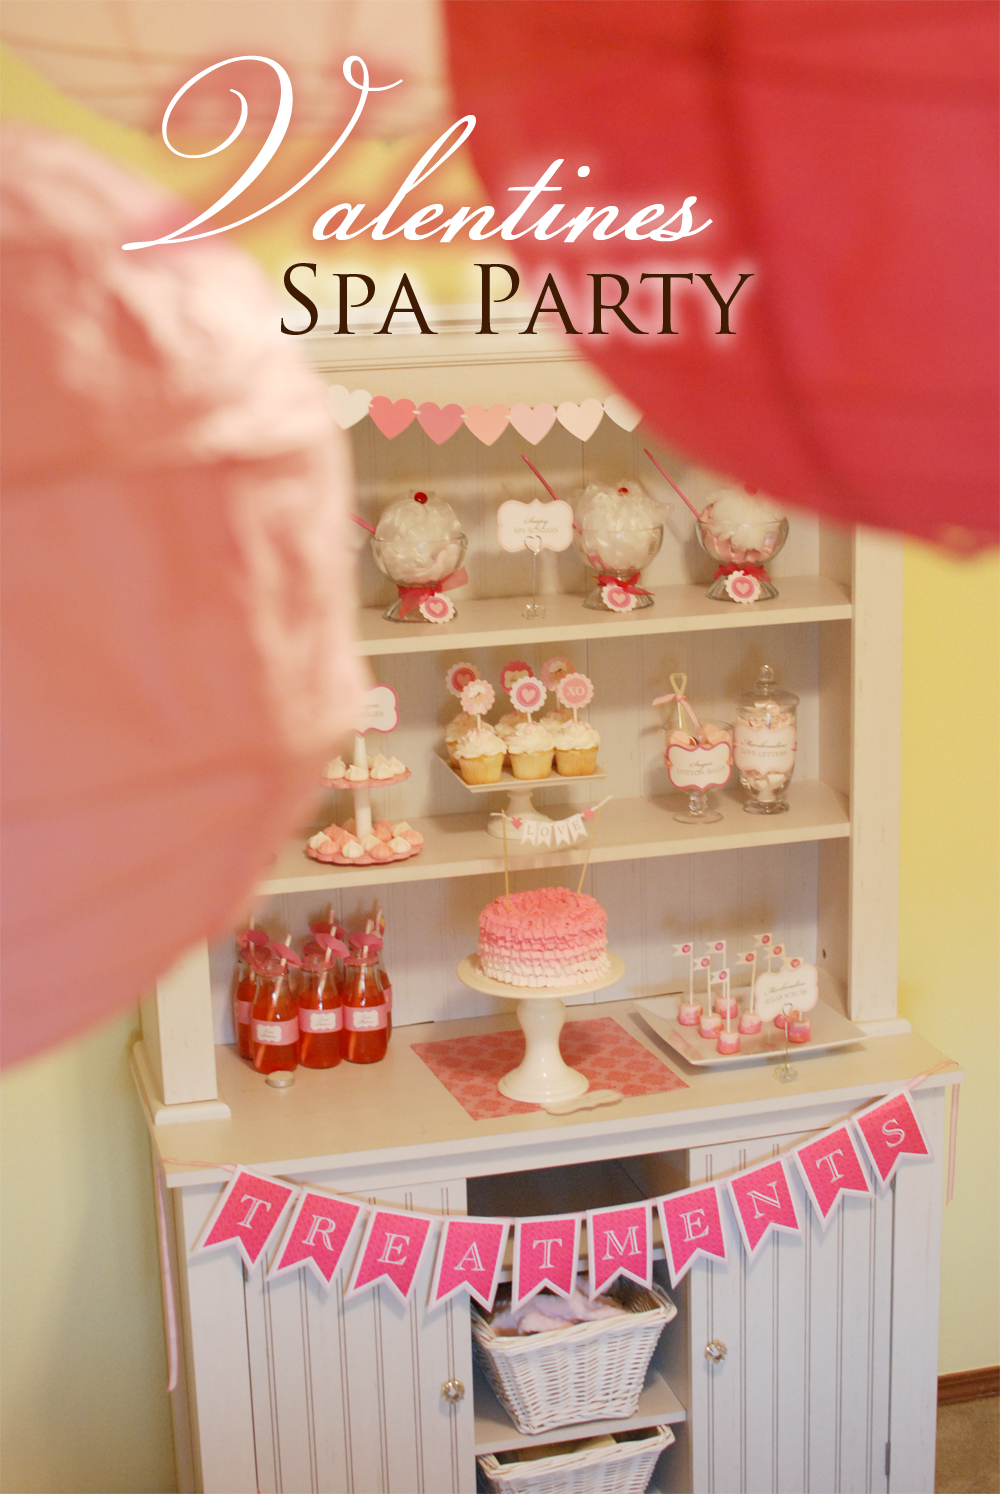 {REAL PARTIES} Valentineu0027s Day Spa